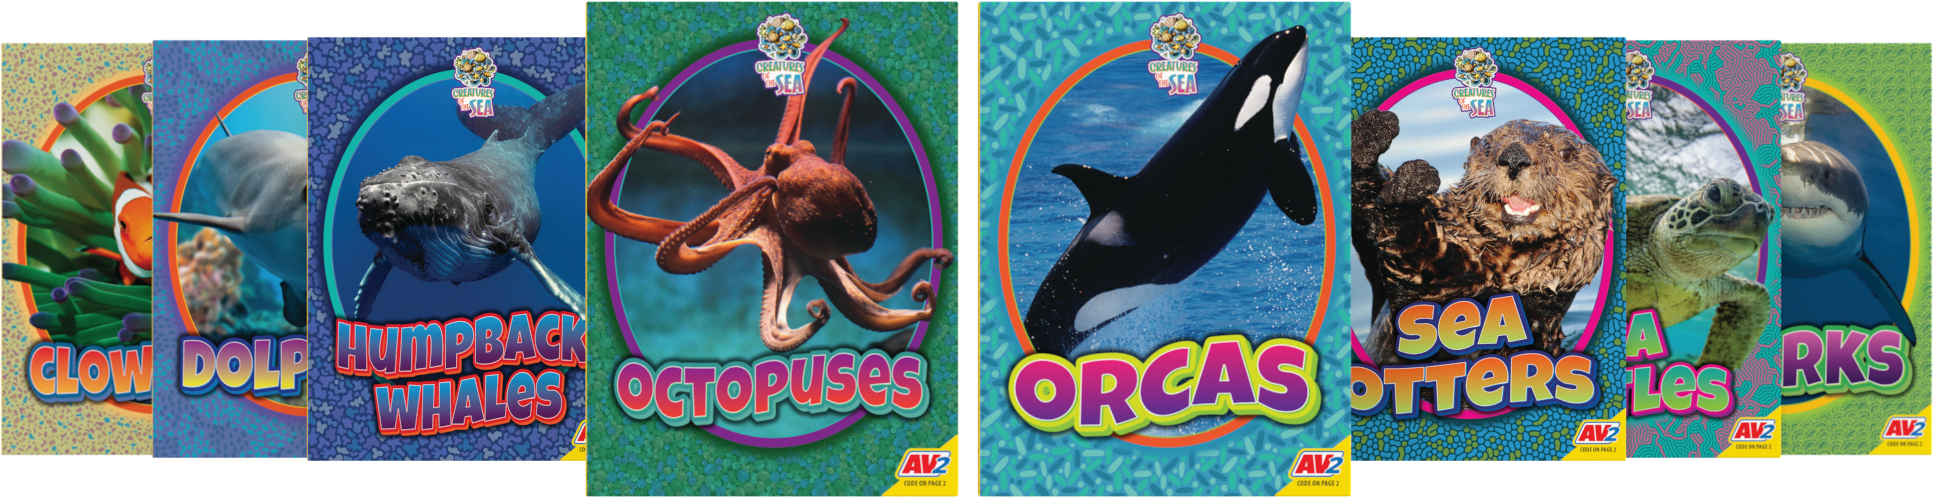 creatures-of-the-sea-collection